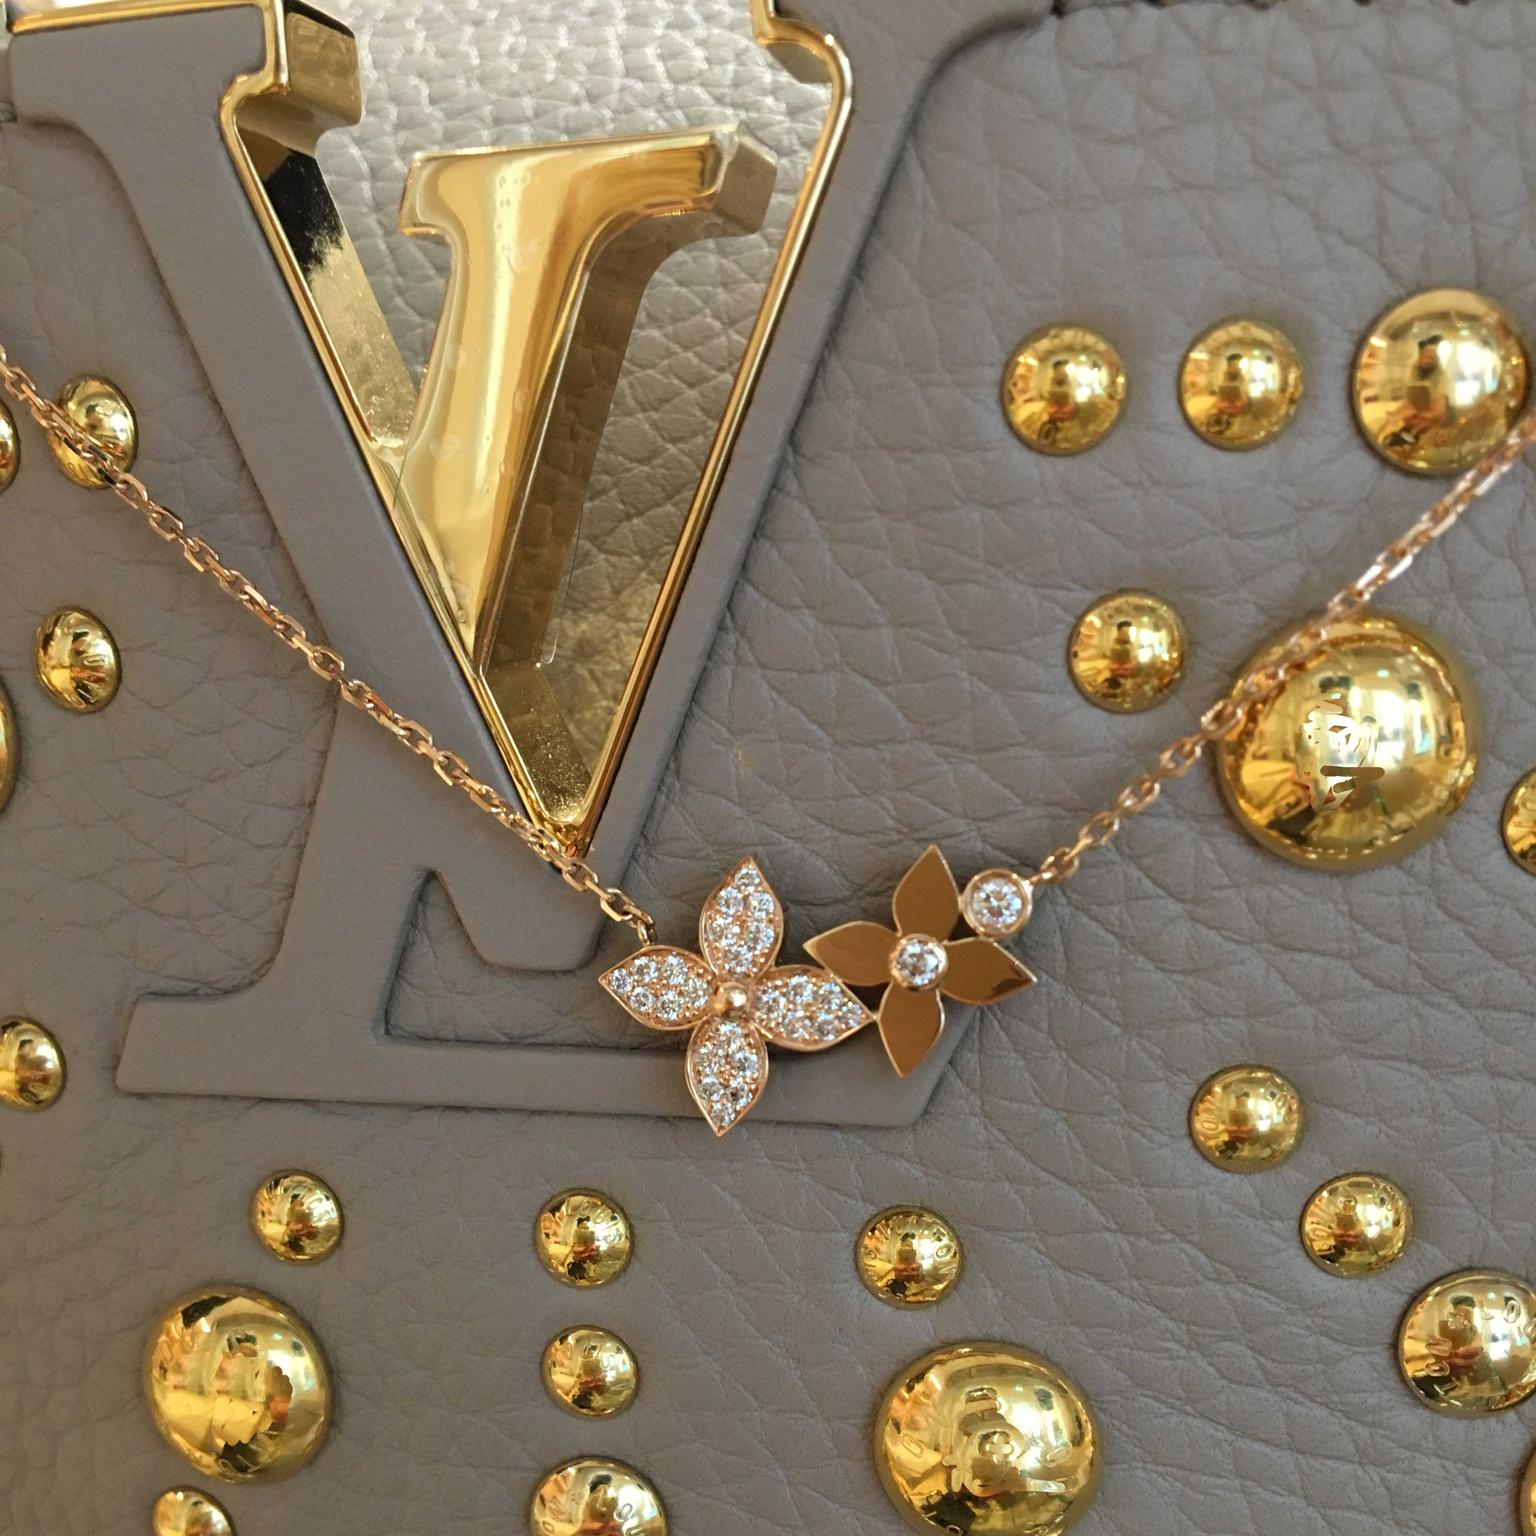 Louis Vuitton Star Blossom rose gold necklace with diamonds